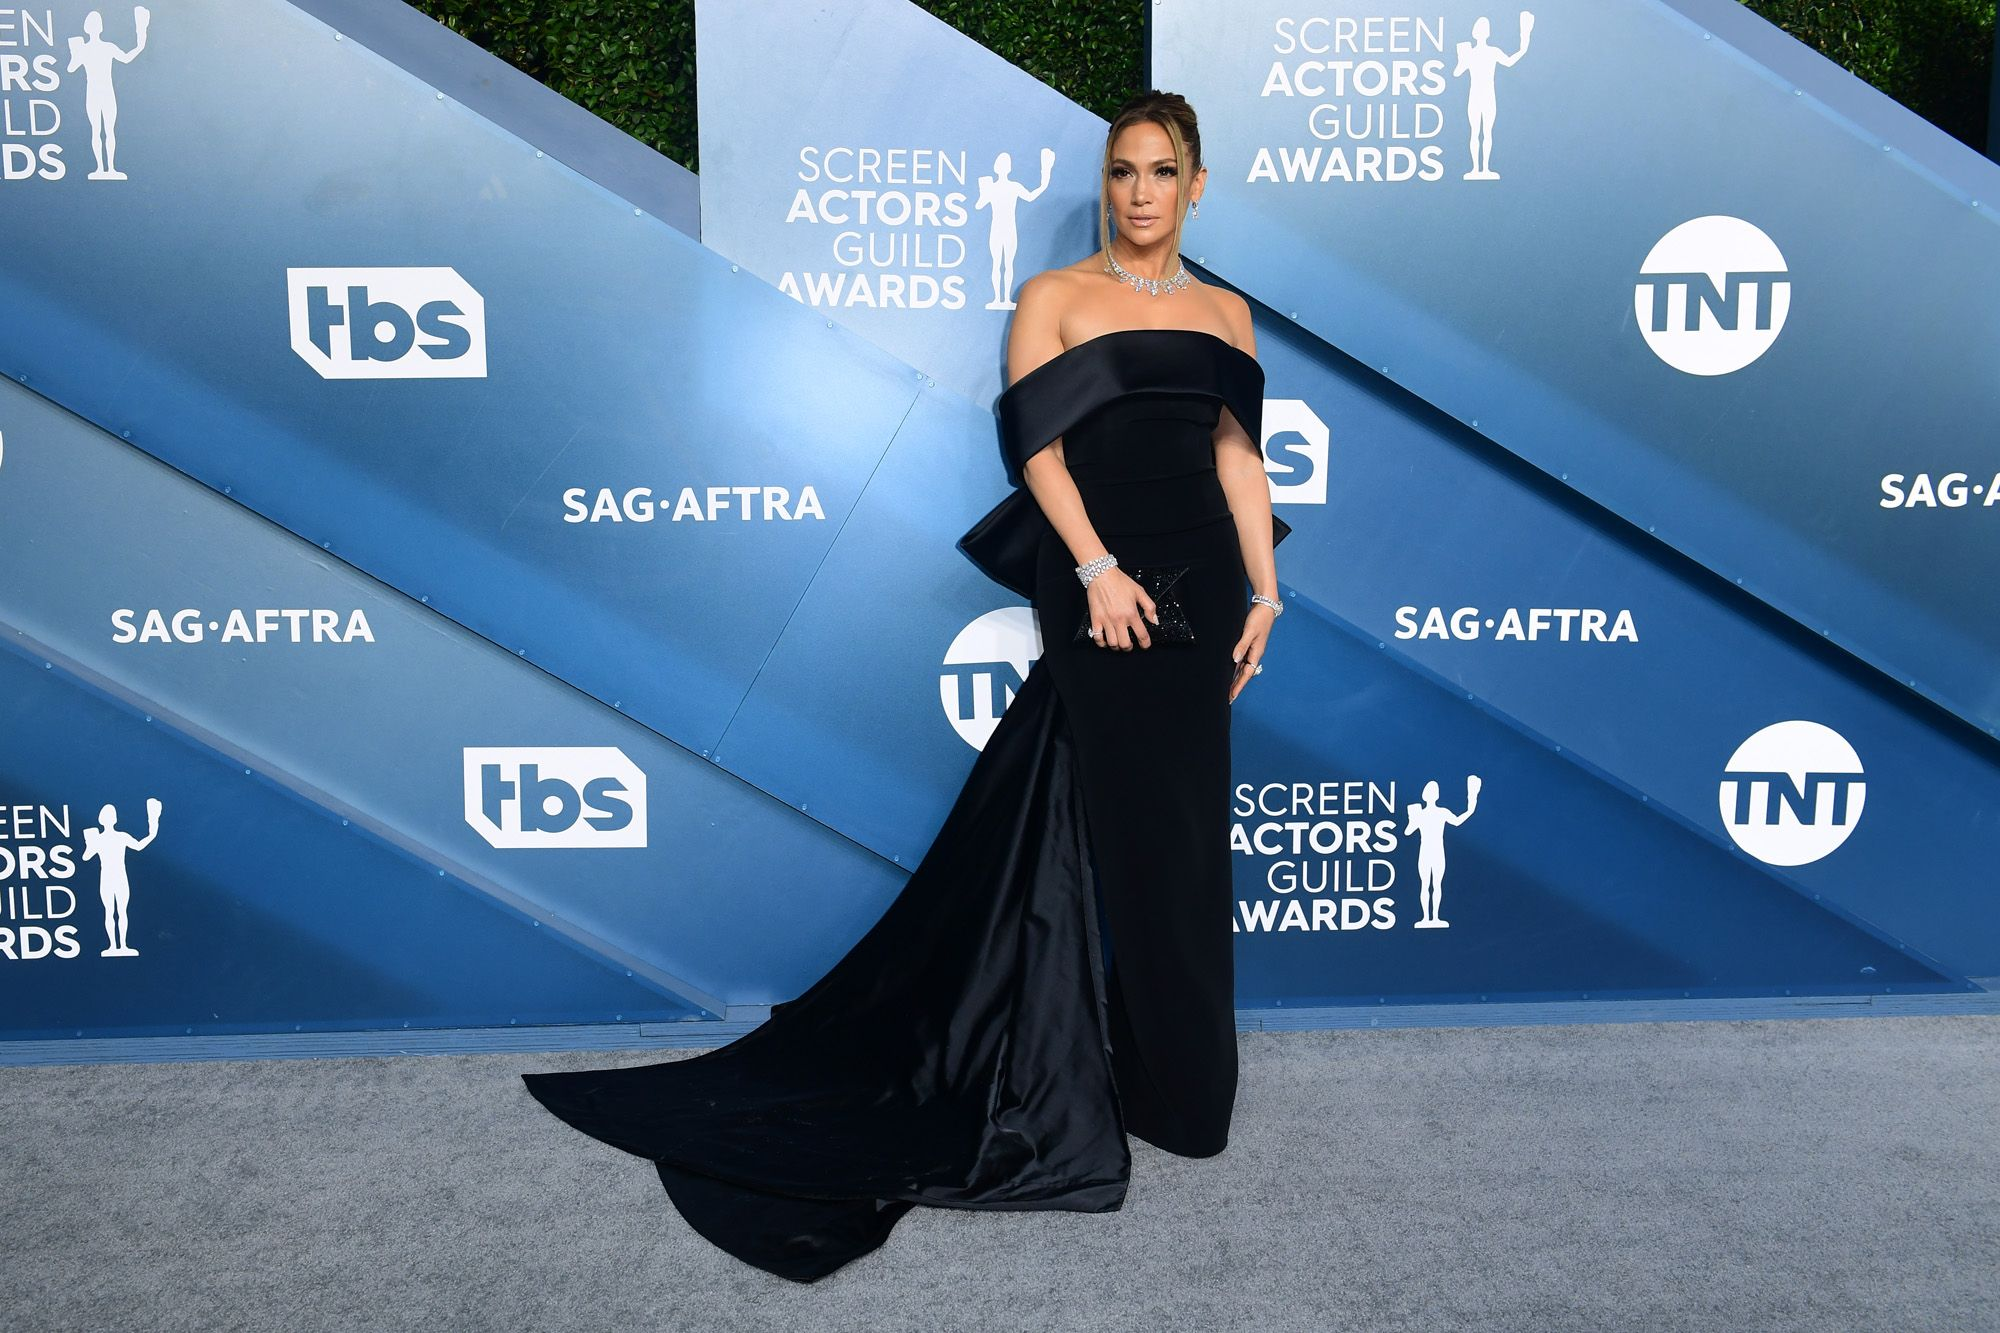 US actress Jennifer Lopez arrives for the 26th Annual Screen Actors Guild Awards at the Shrine Auditorium in Los Angeles on January 19, 2020. (Photo by FREDERIC J. BROWN / AFP)